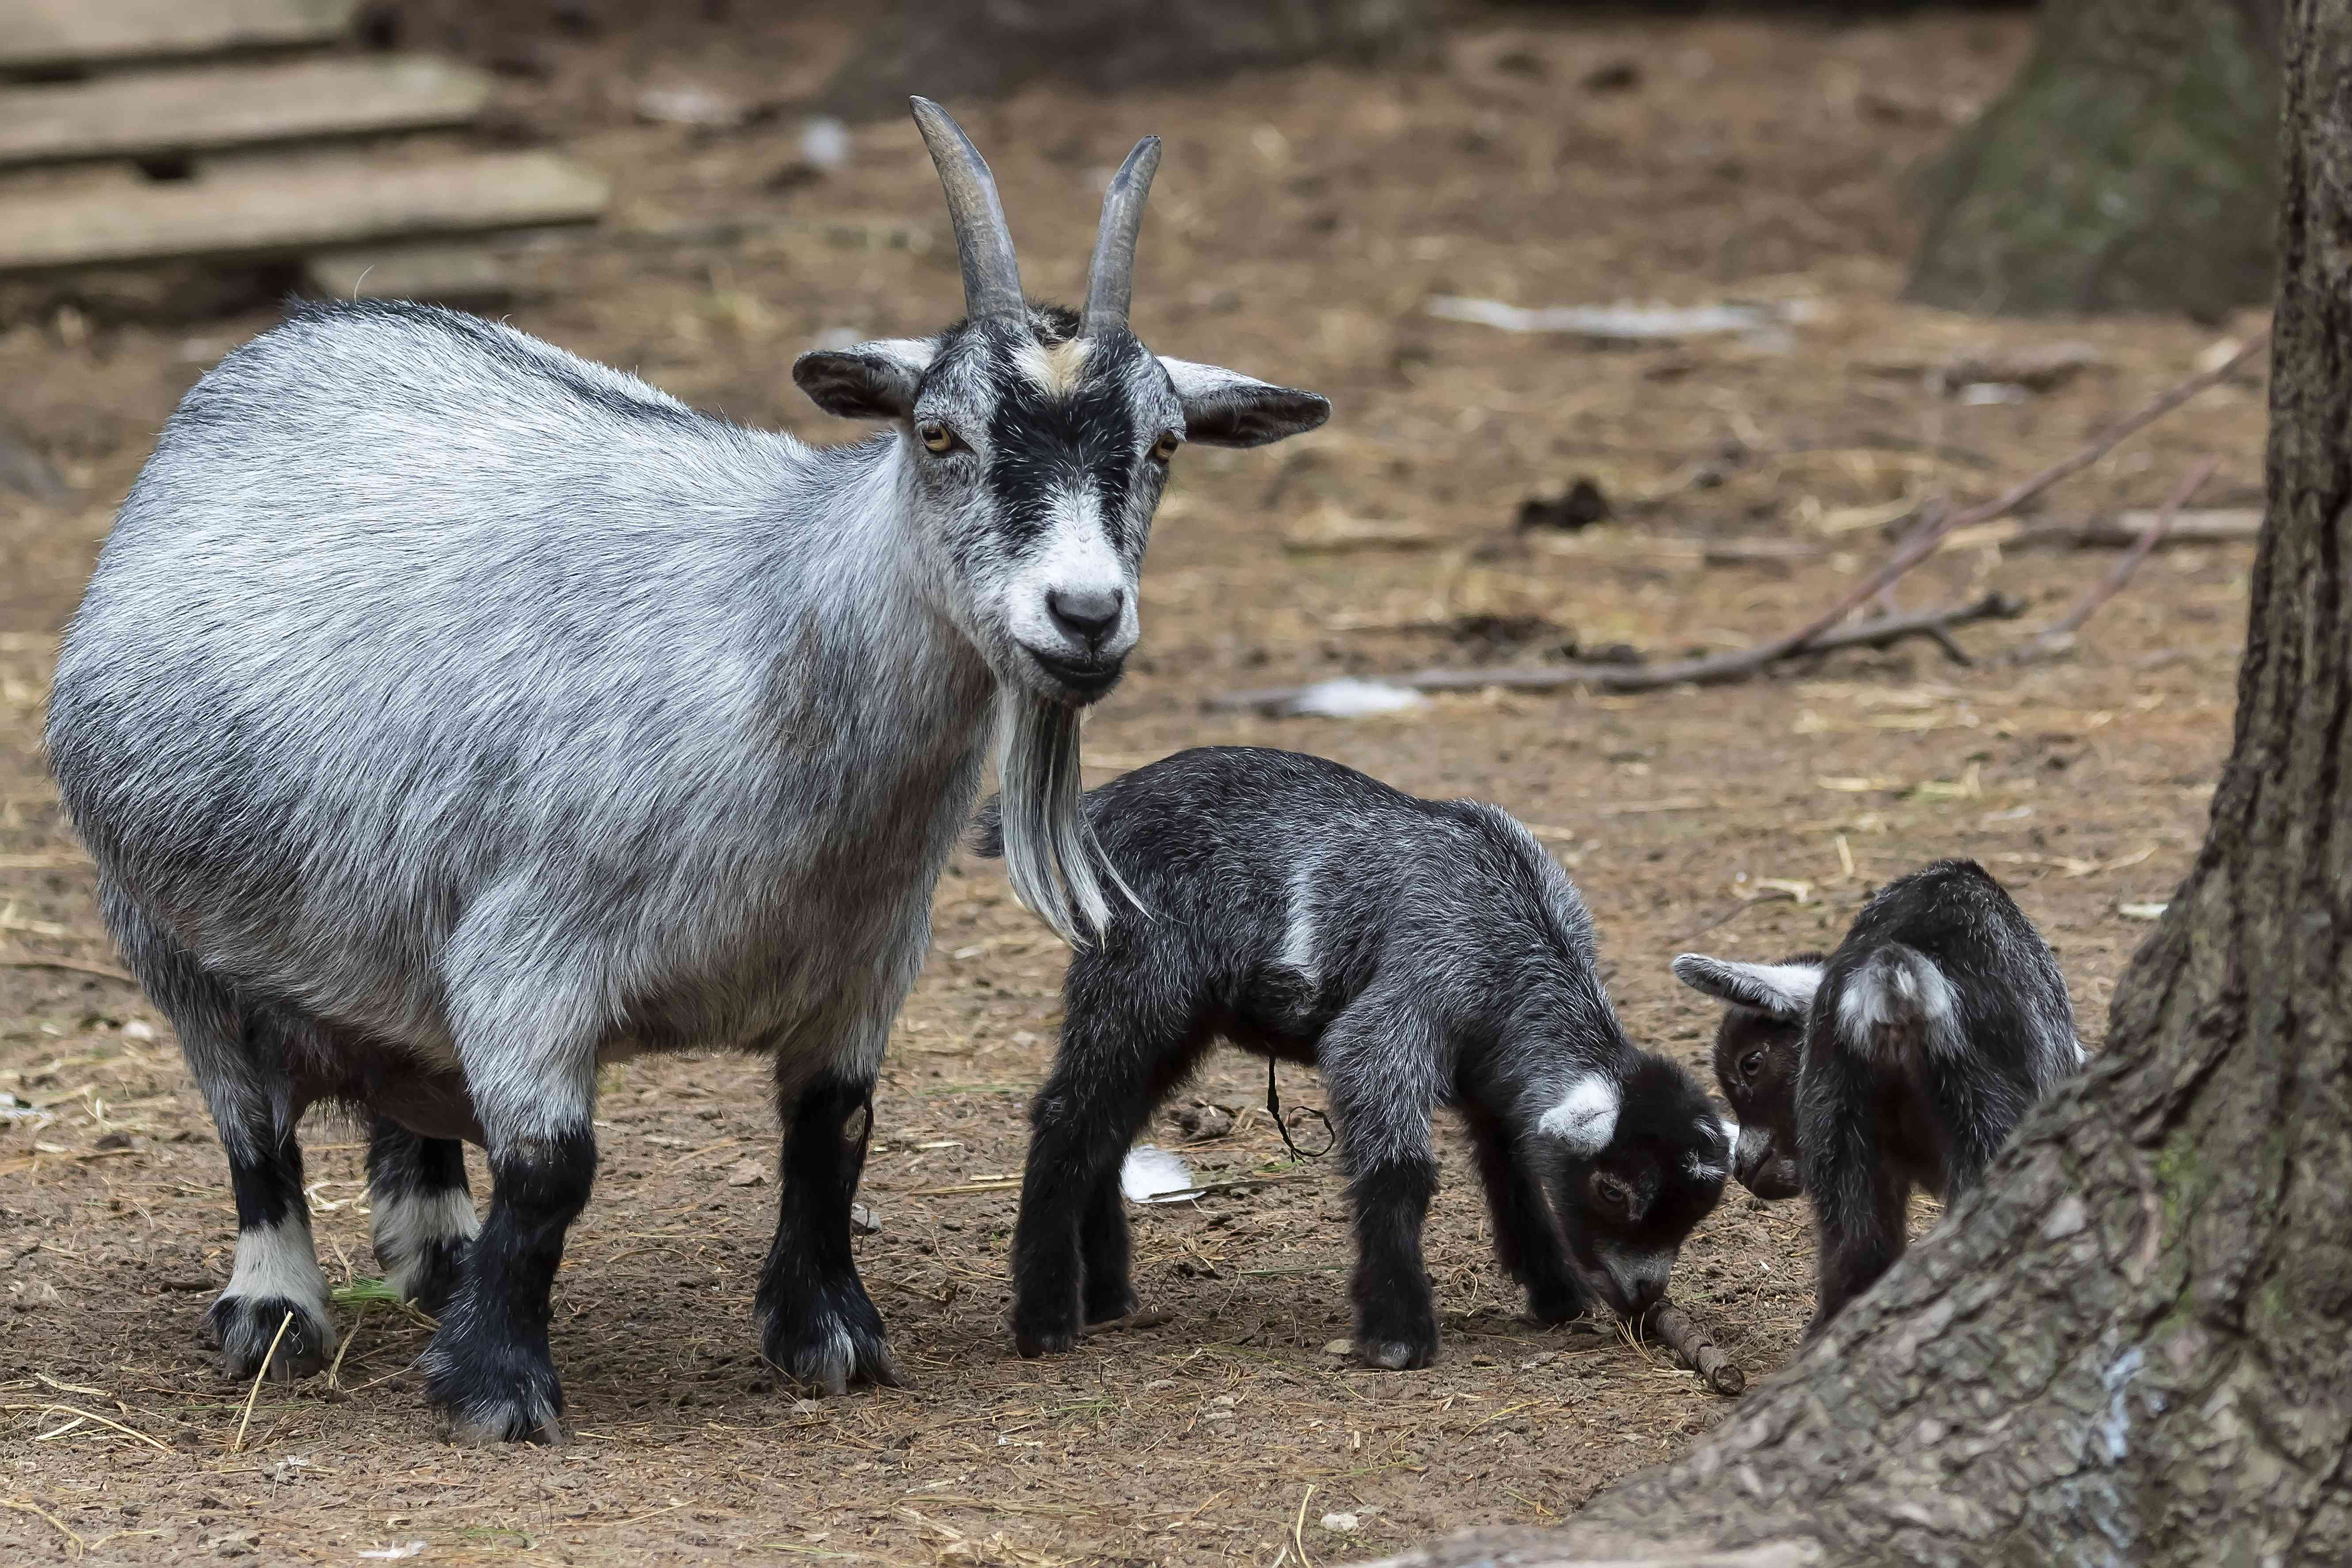 Pygmy goat with its two kids (baby goats)